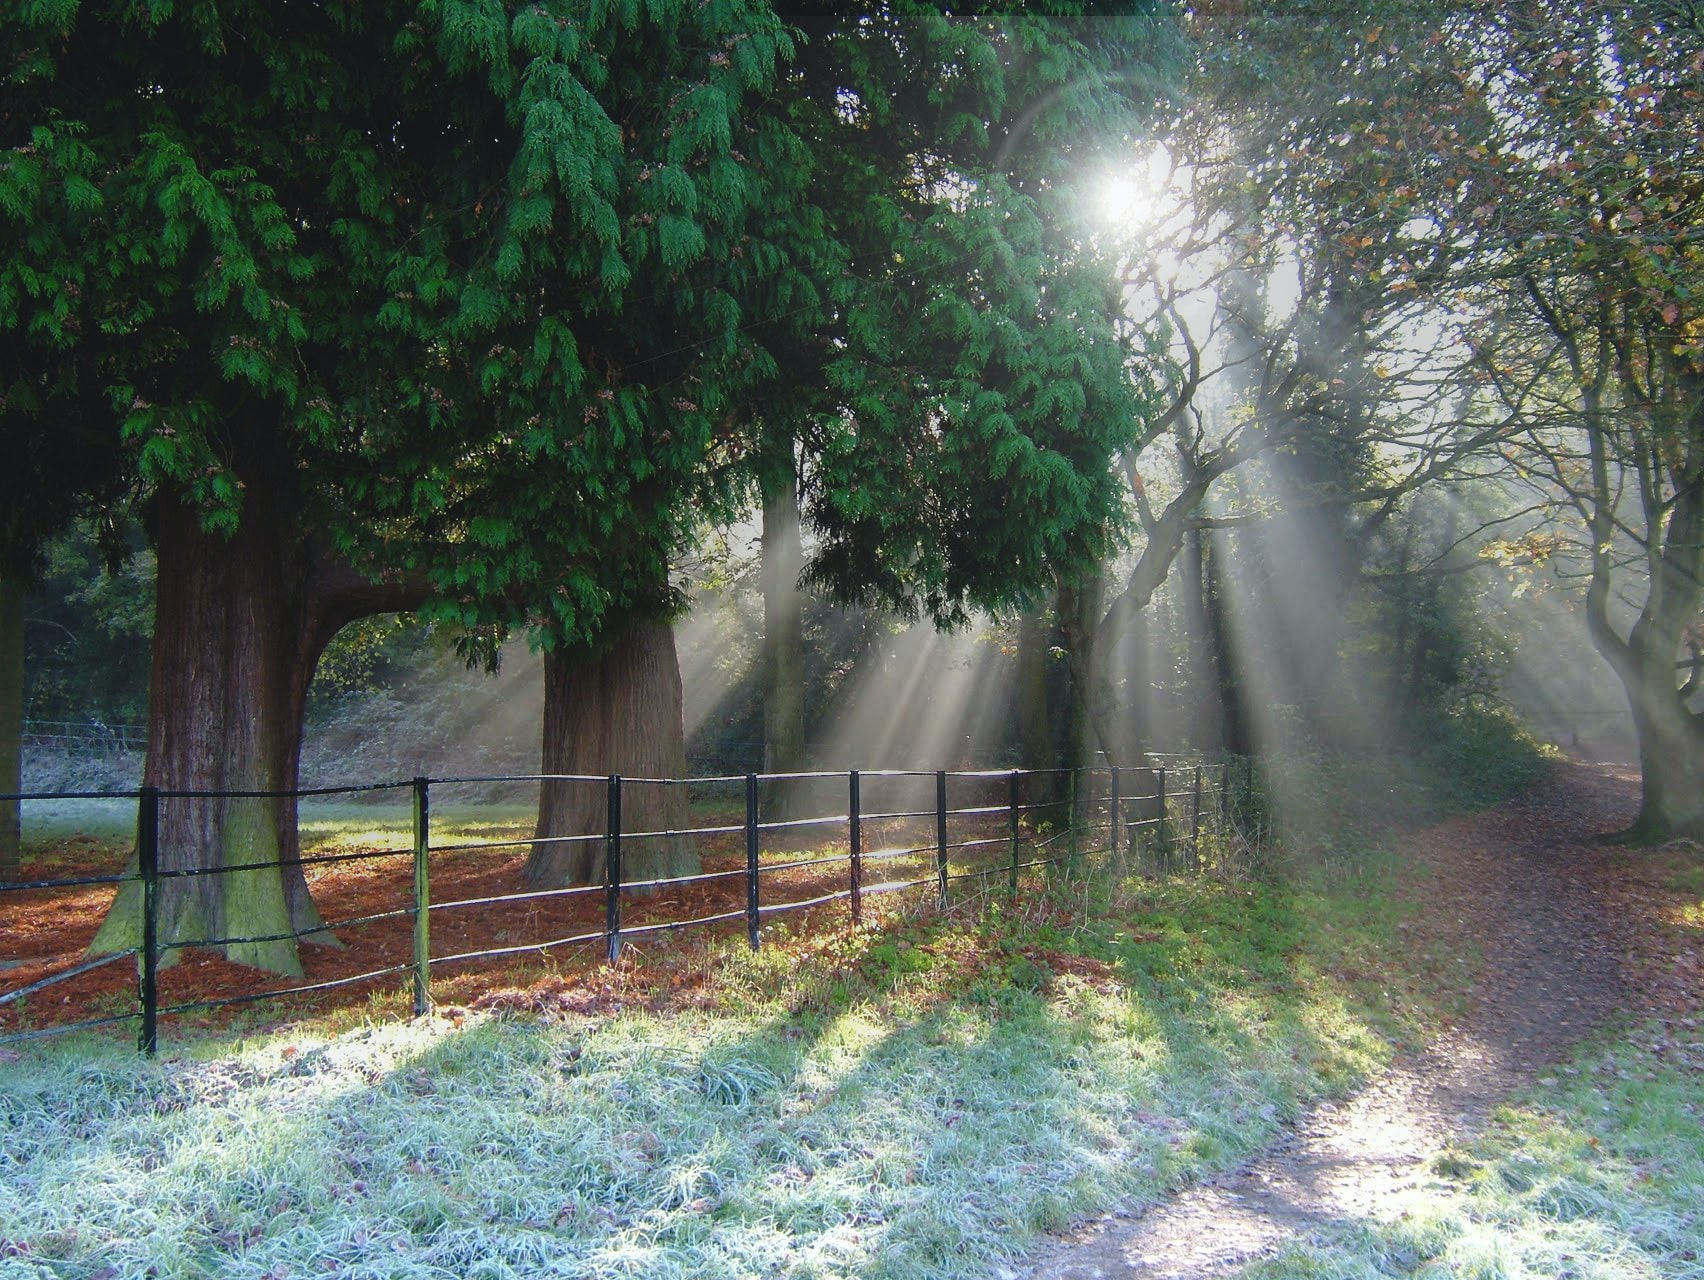 Sunrays falling on a footpath near a fence running along green trees